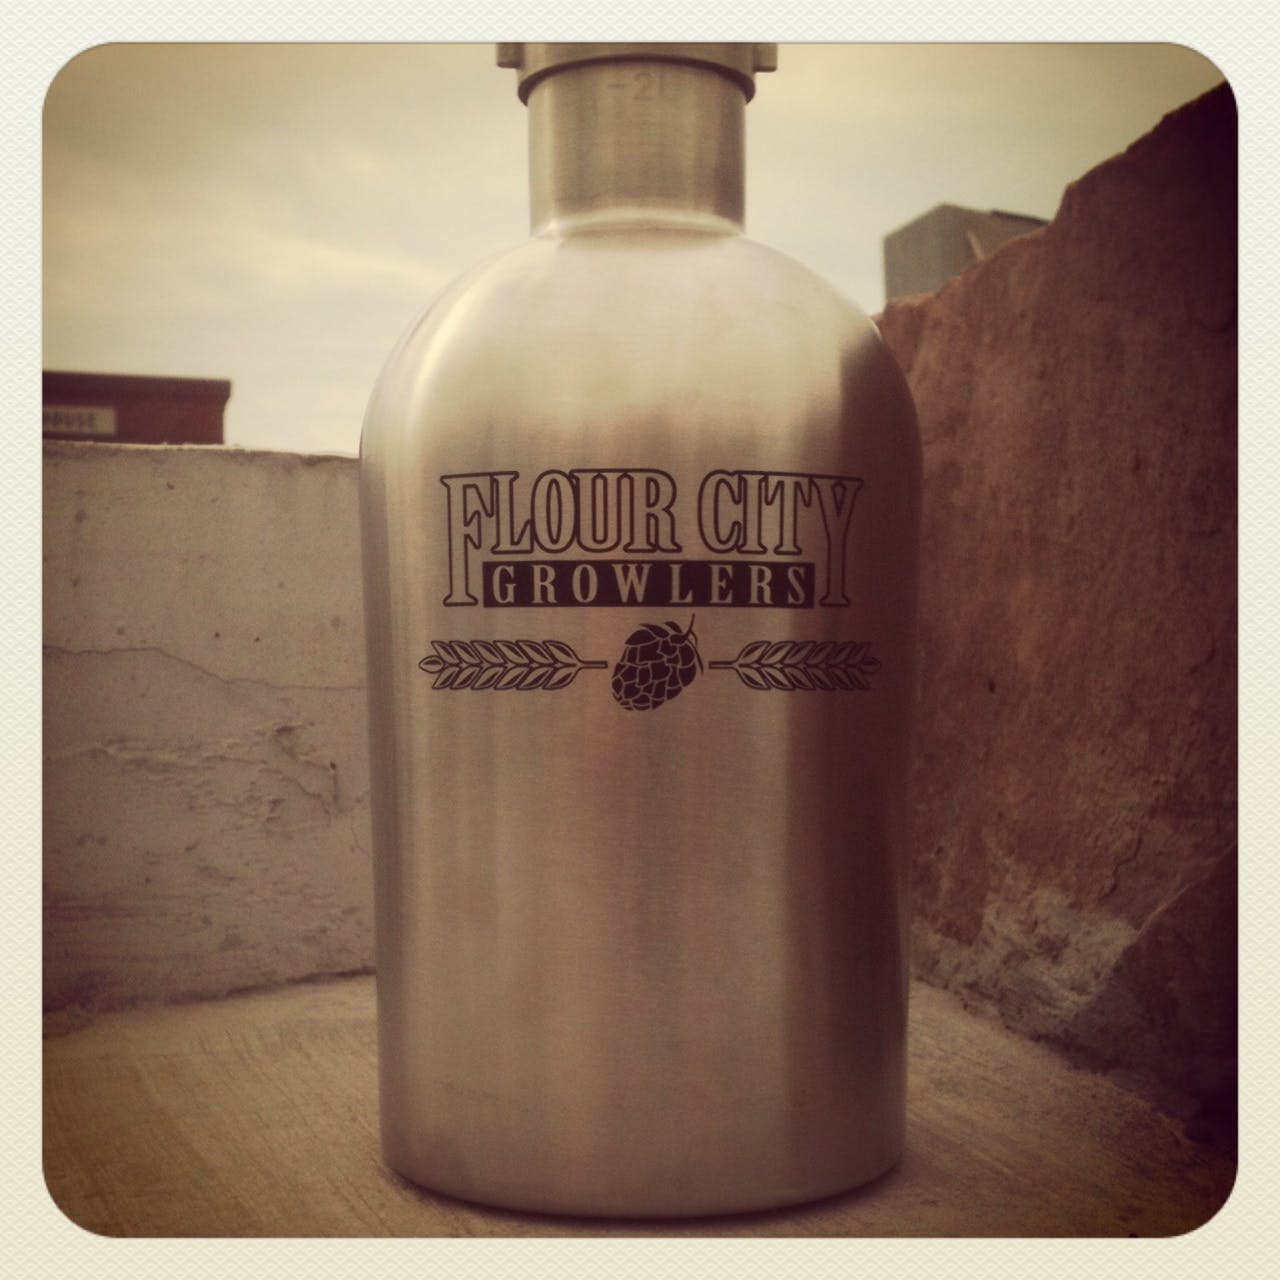 Stainless Steel Growler with FCG logo Growler sold by Flour City Growlers